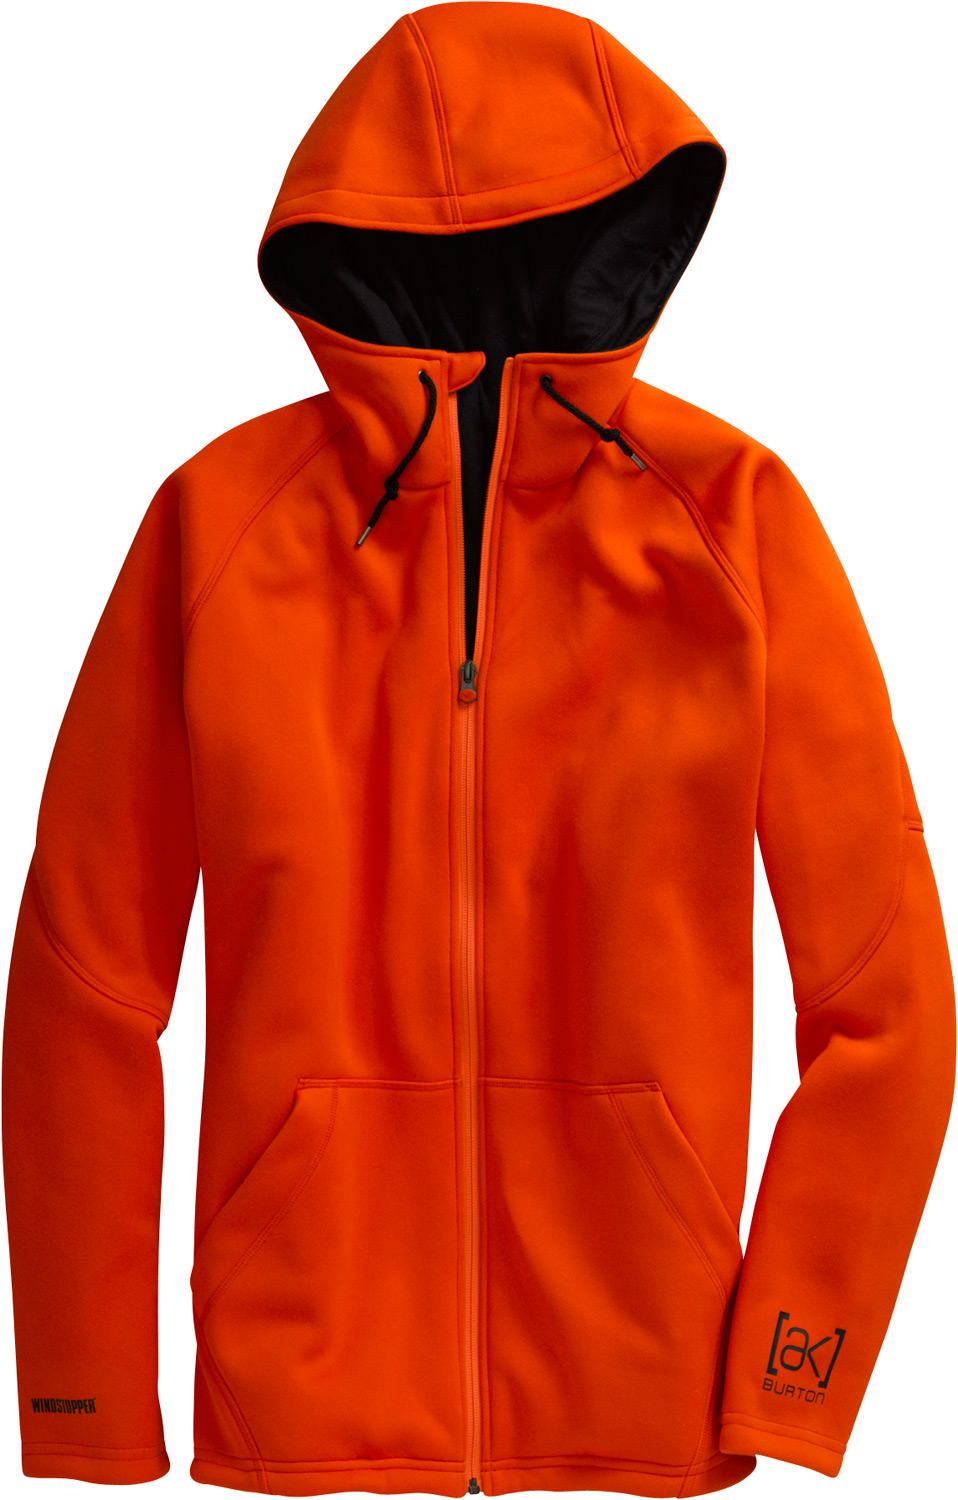 Snowboard Lightweight, windproof, and highly breathable, up to 250% warmer than a non-windproof eece.Key Features of the Burton AK Blitzer Windstopper Jacket: DRYRIDE Thermex Interlock Fabrication WINDSTOPPER Lining Highly Breathable for Accelerated Moisture Wicking Hood with Draw Cord Oversized Kangaroo Handwarmer Pockets - $199.95